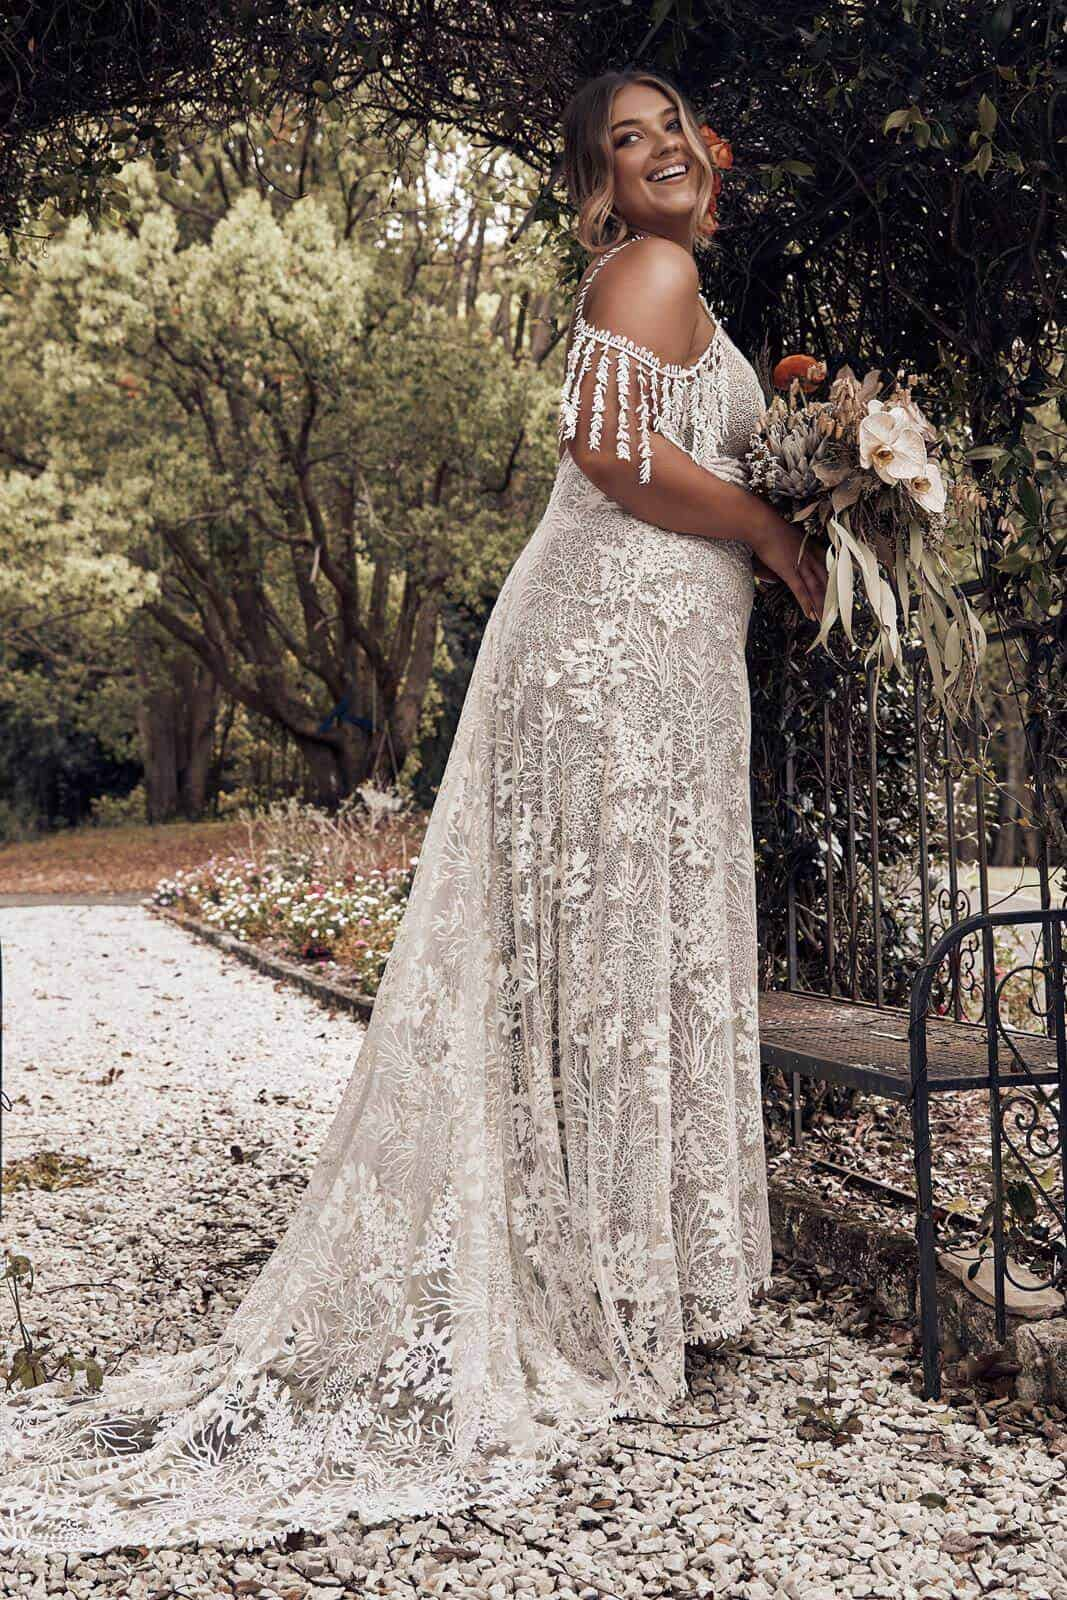 Elopement Wedding Dress for Curvy Brides Lace Embroided Texture Dress Intimate Wedding Dress Romantic Grace Loves Lace Sol 2 (1)